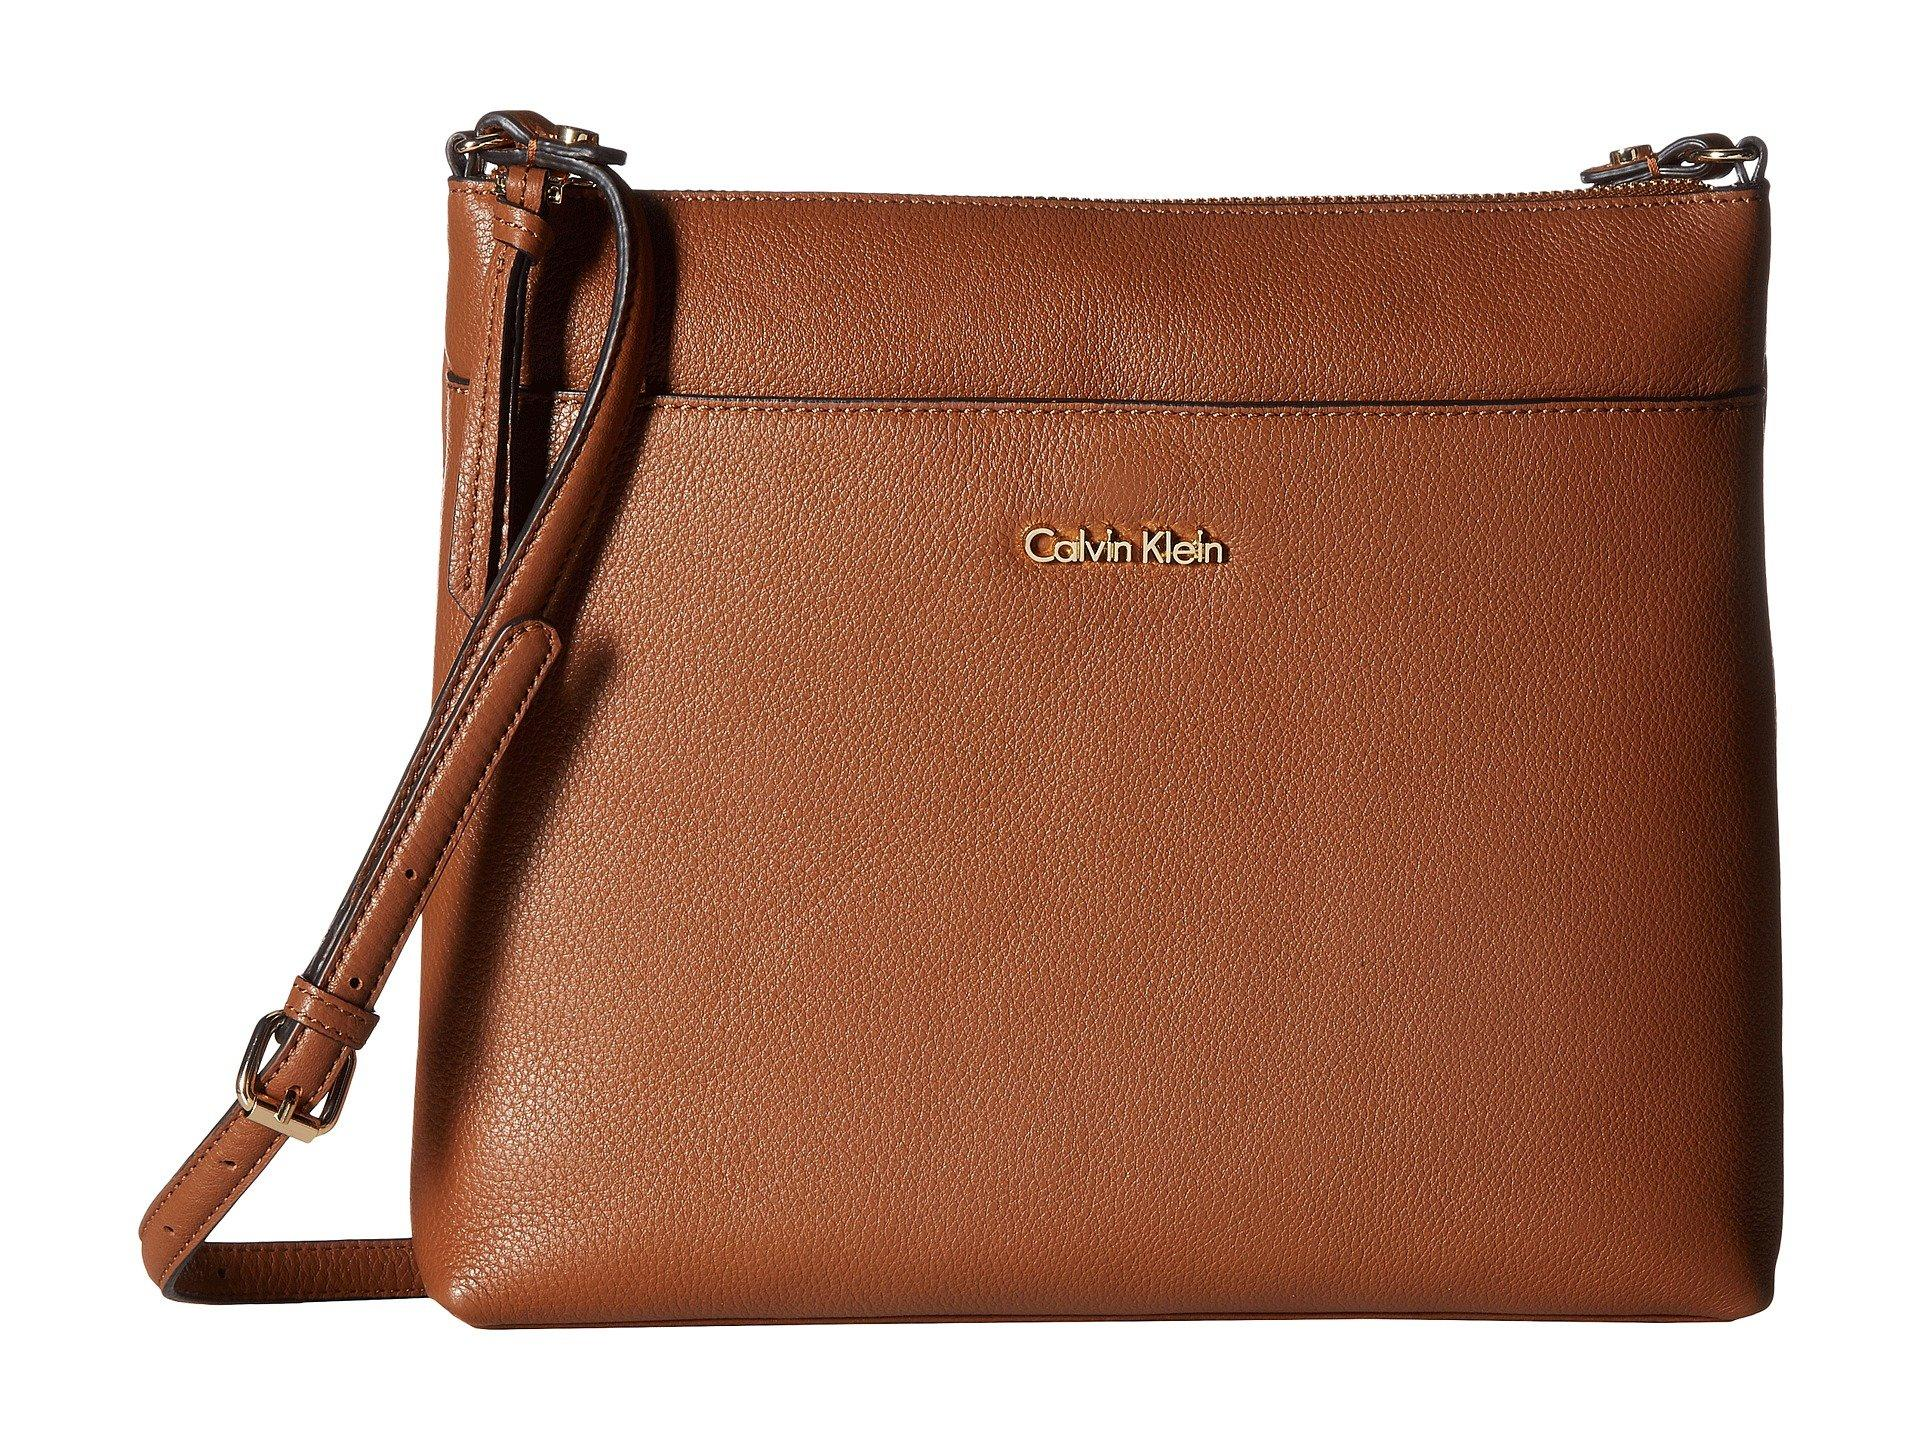 Calvin Klein Pebble Leather Crossbody In Luggage